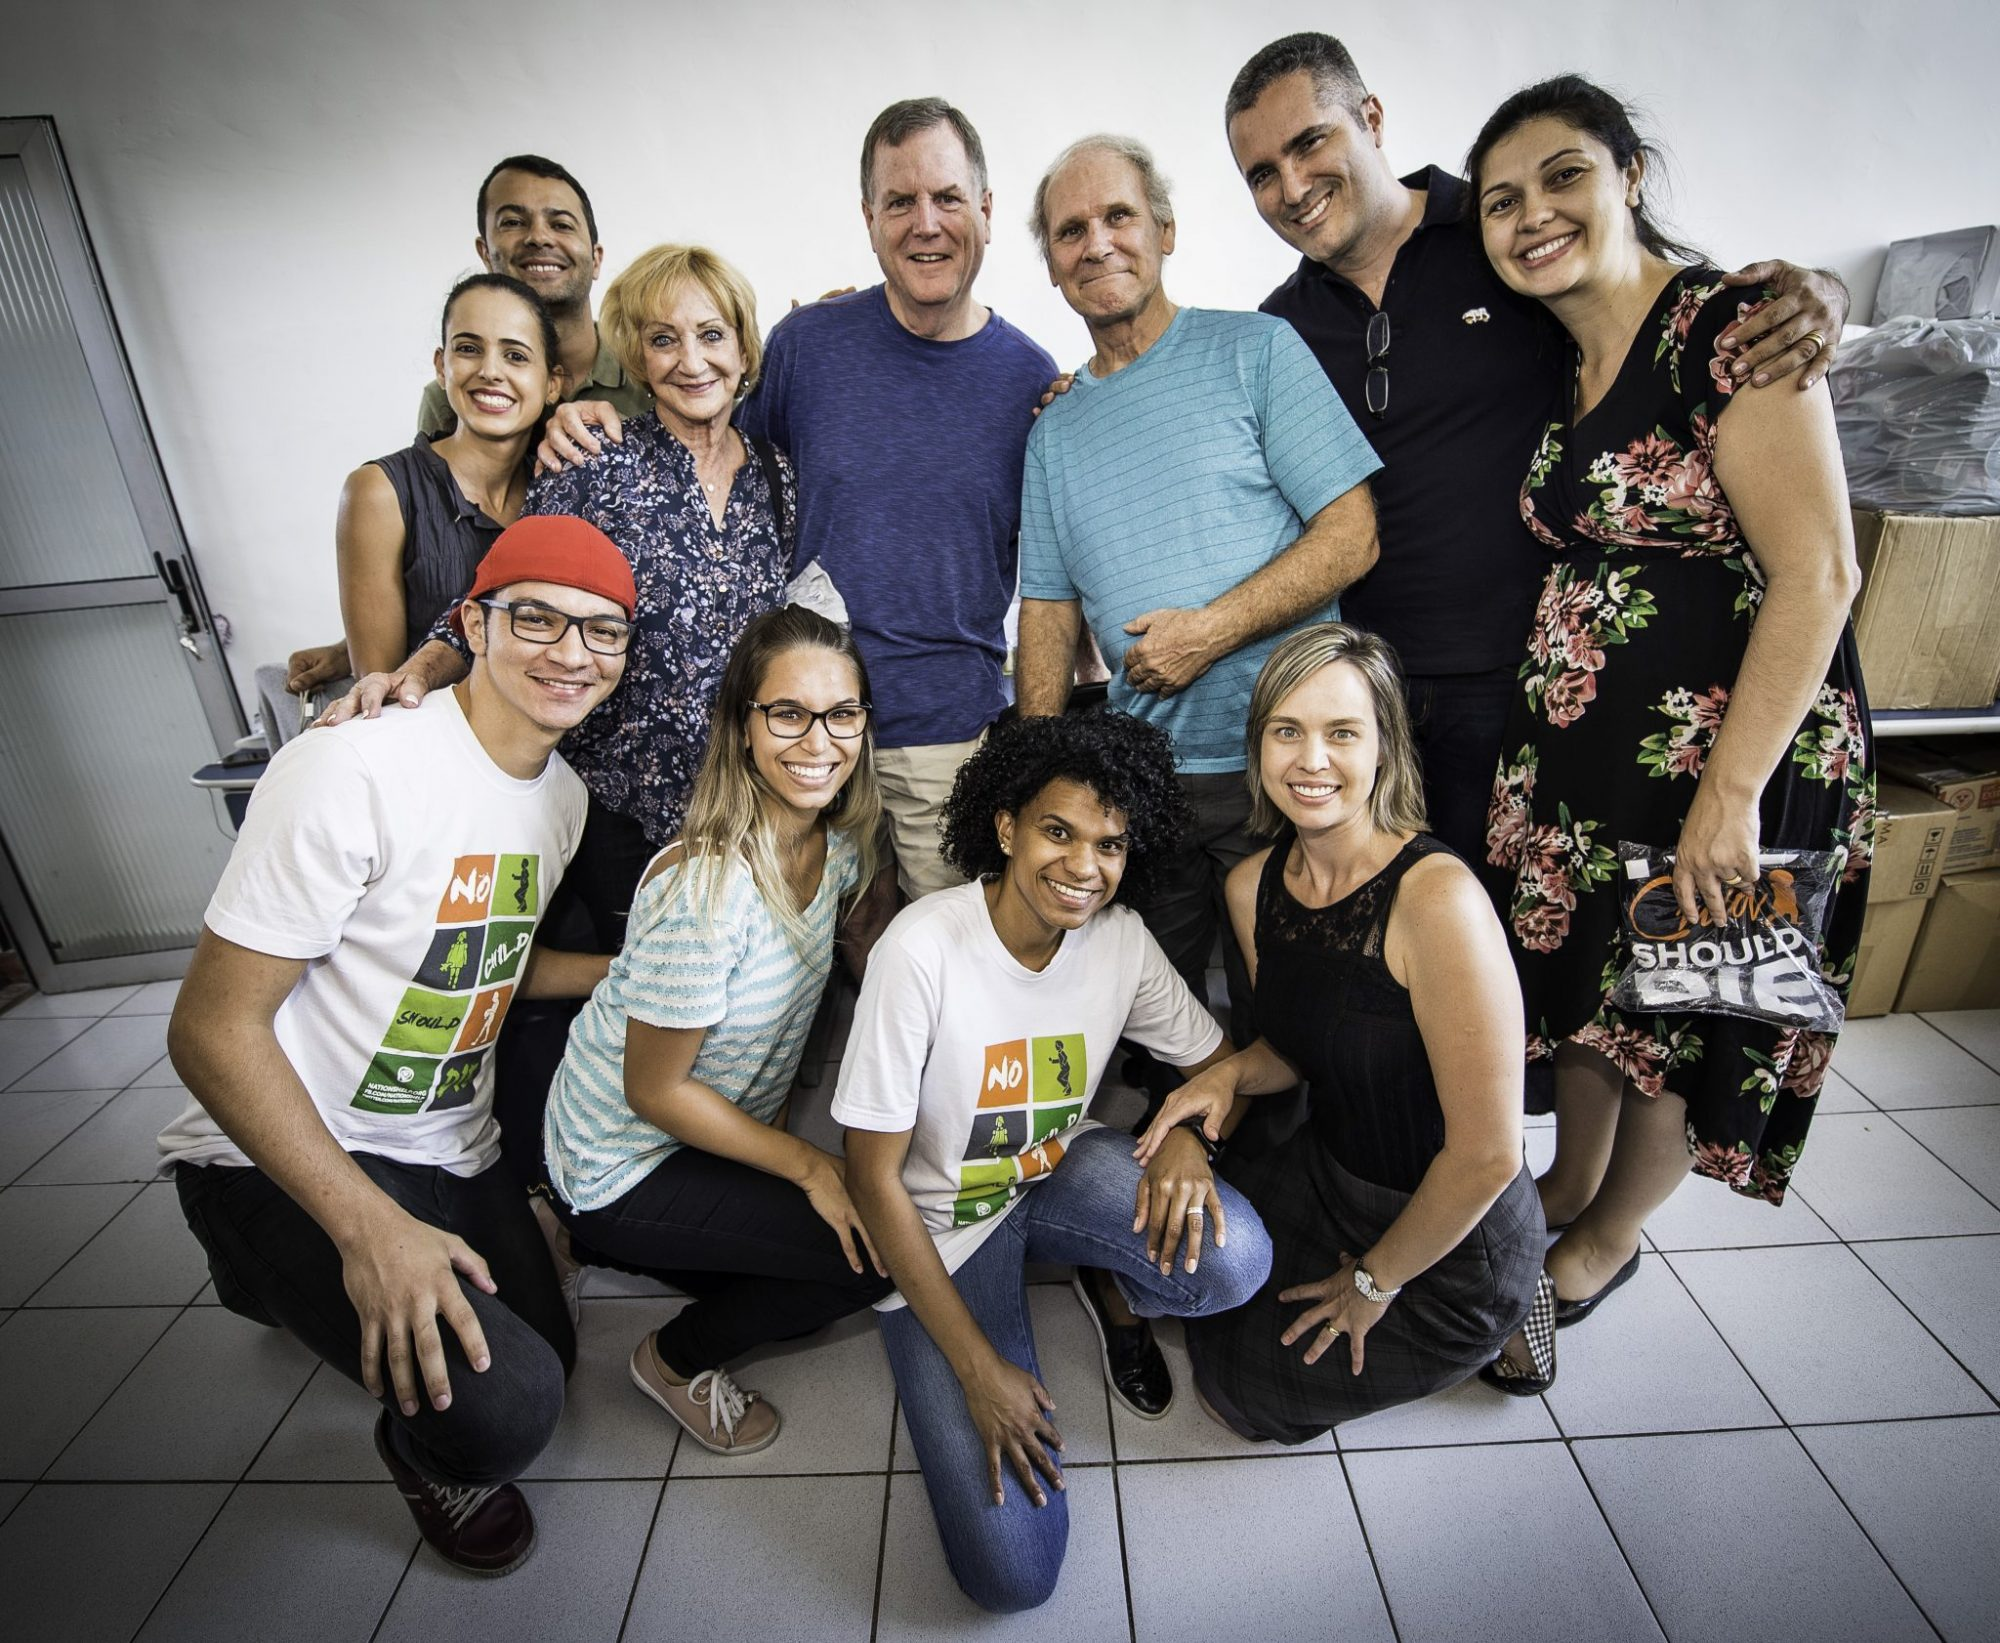 Read about Miriam Frederick's visit to Brazil, the founder of New Life 4 Kids.